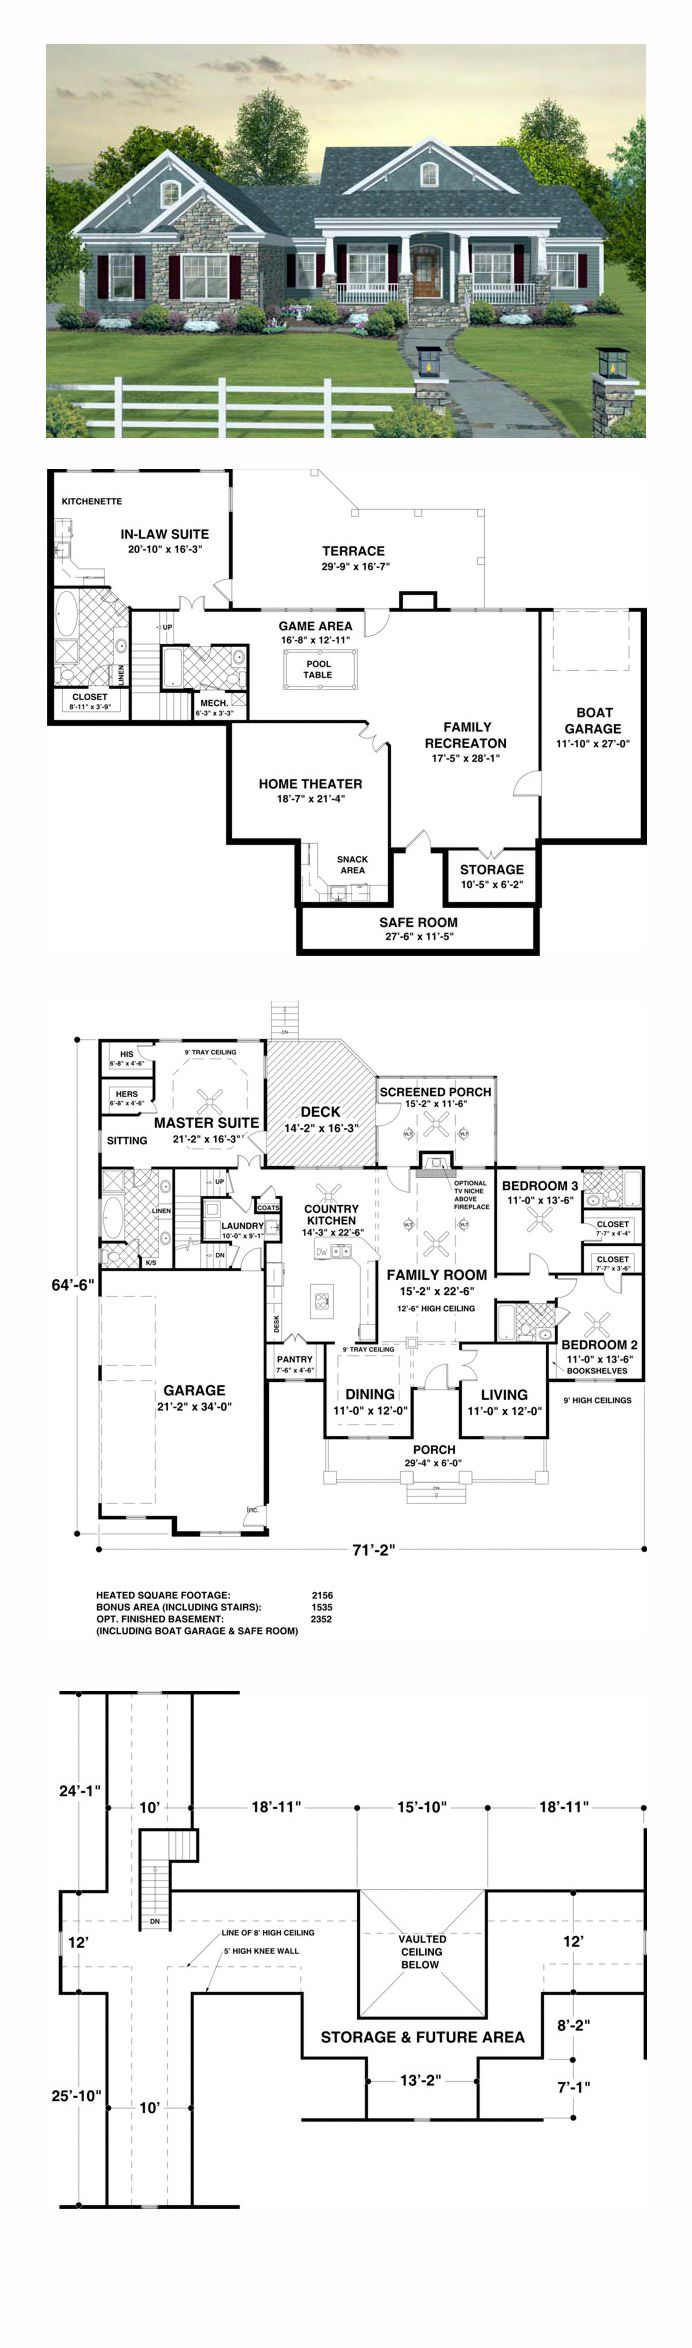 1000+ ideas about ountry Style House Plans on Pinterest ountry ... - ^